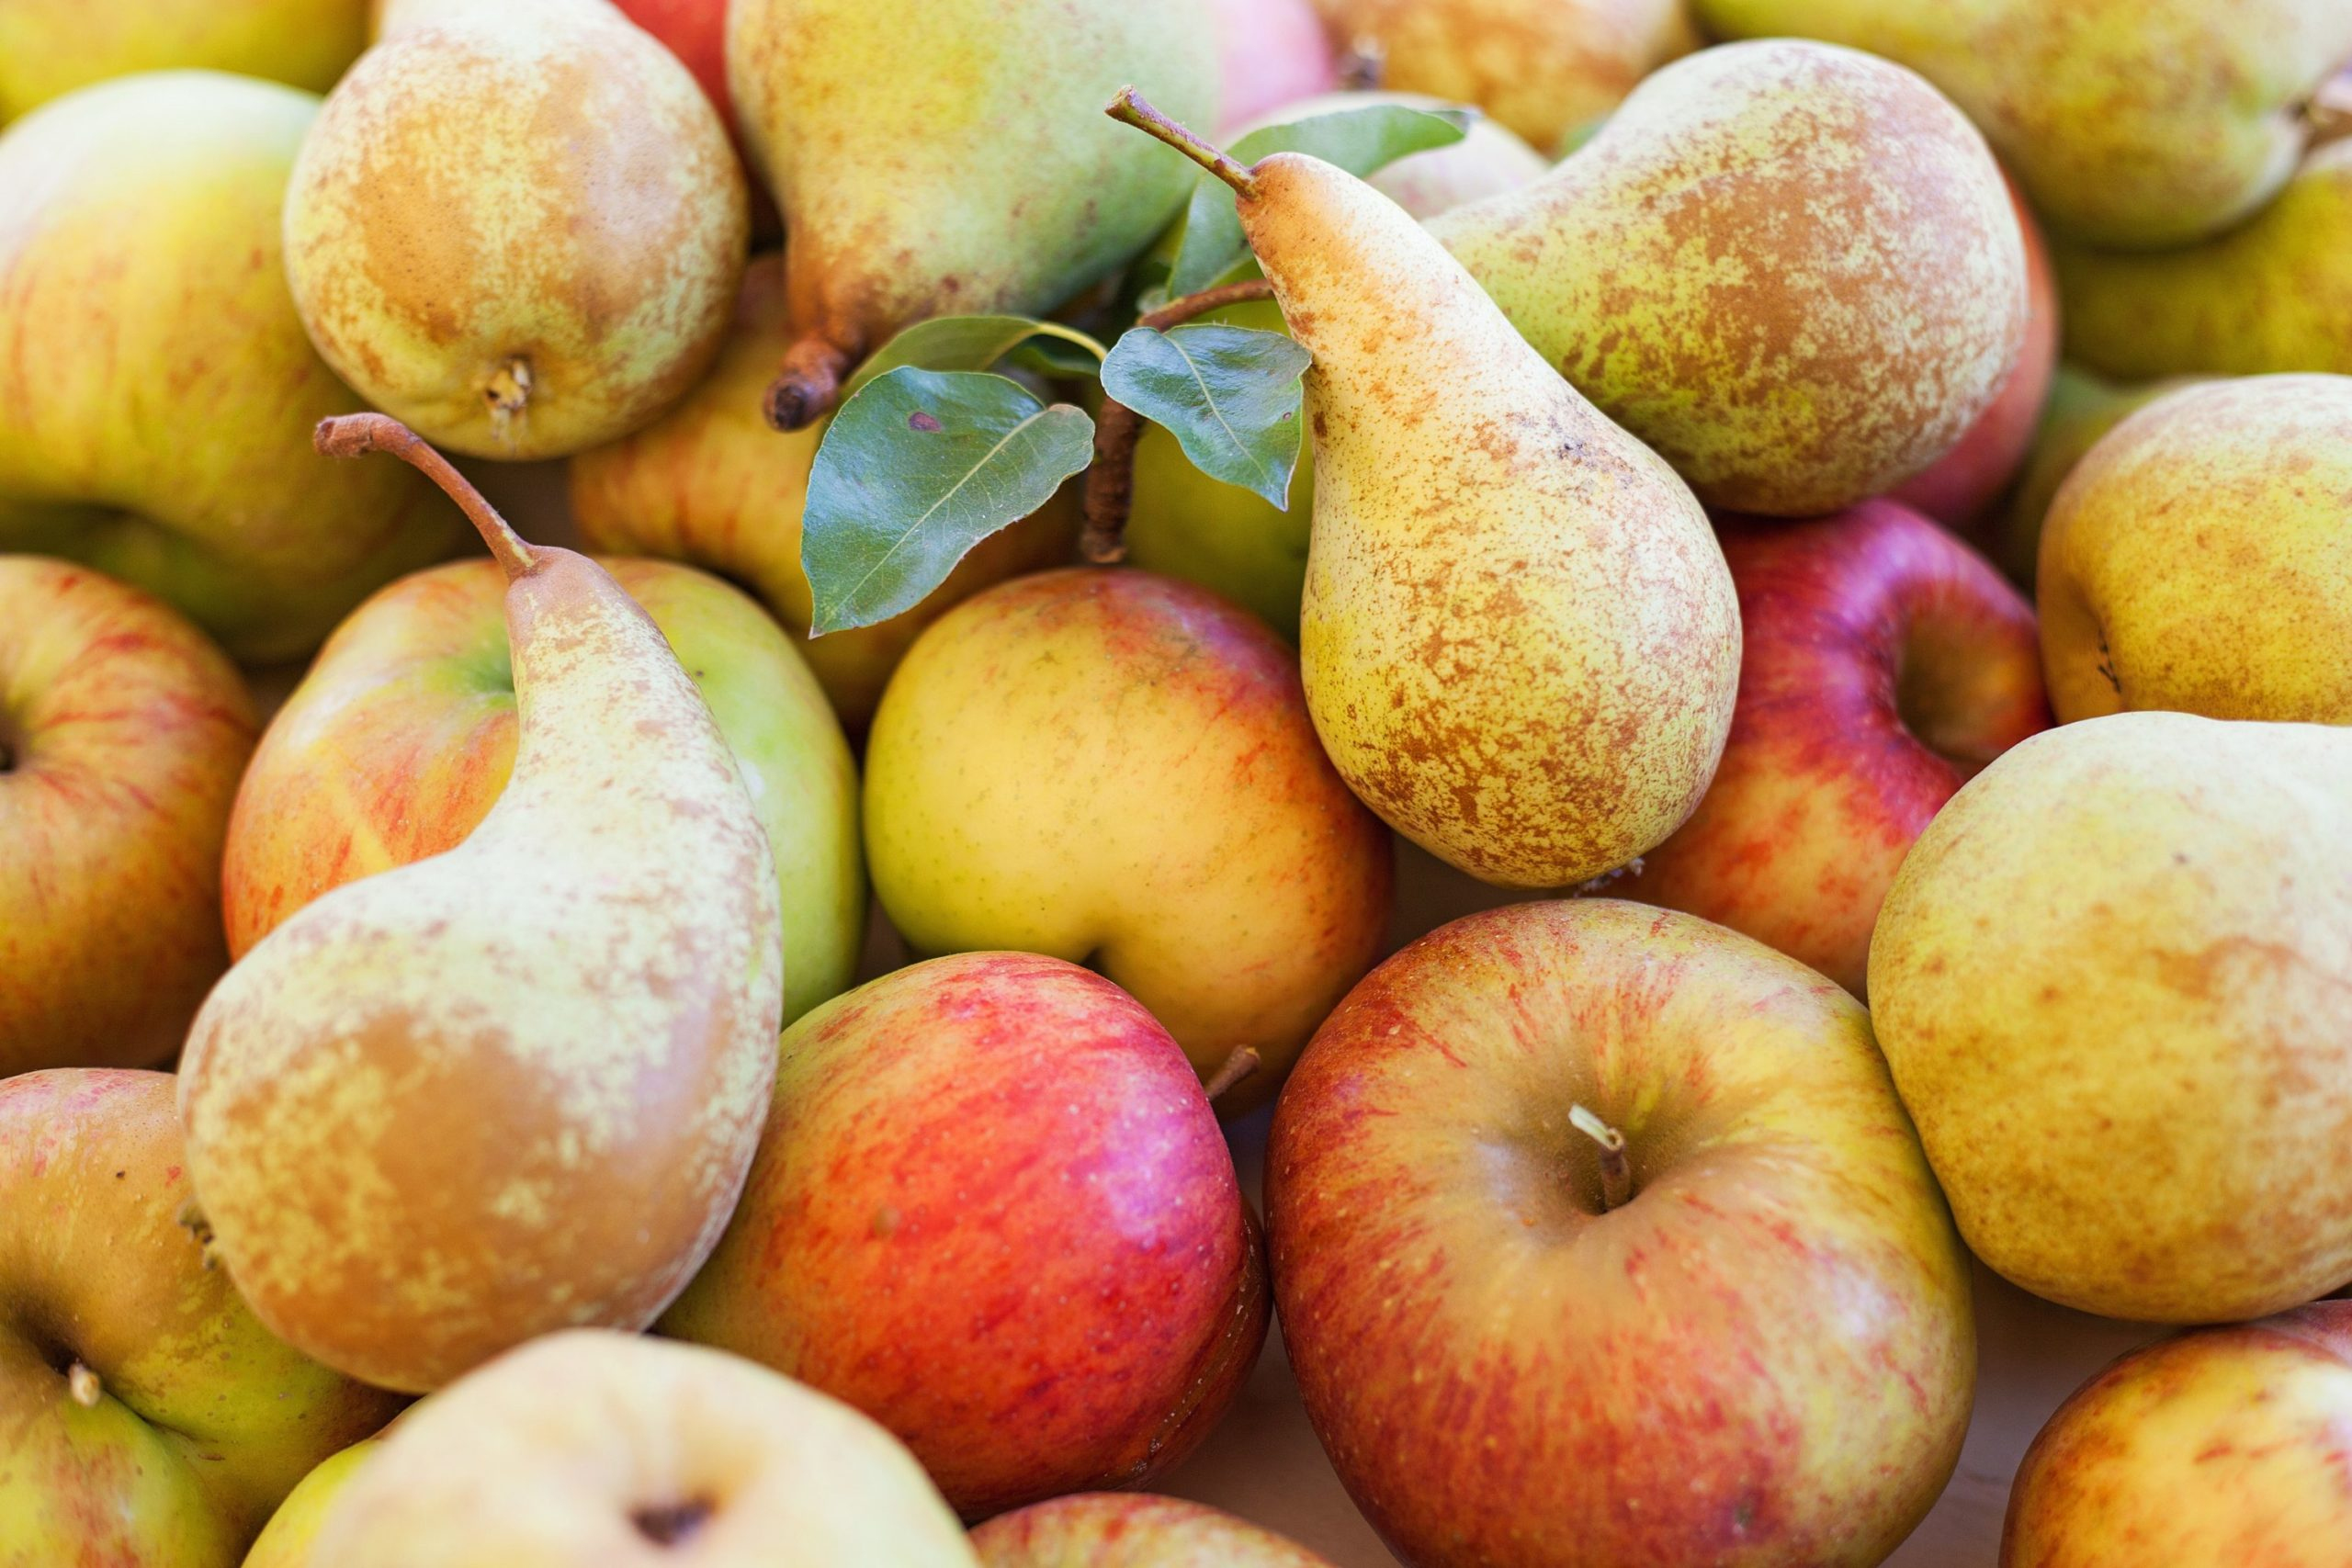 FieldSpec4 used in Australian study on apple and pear production